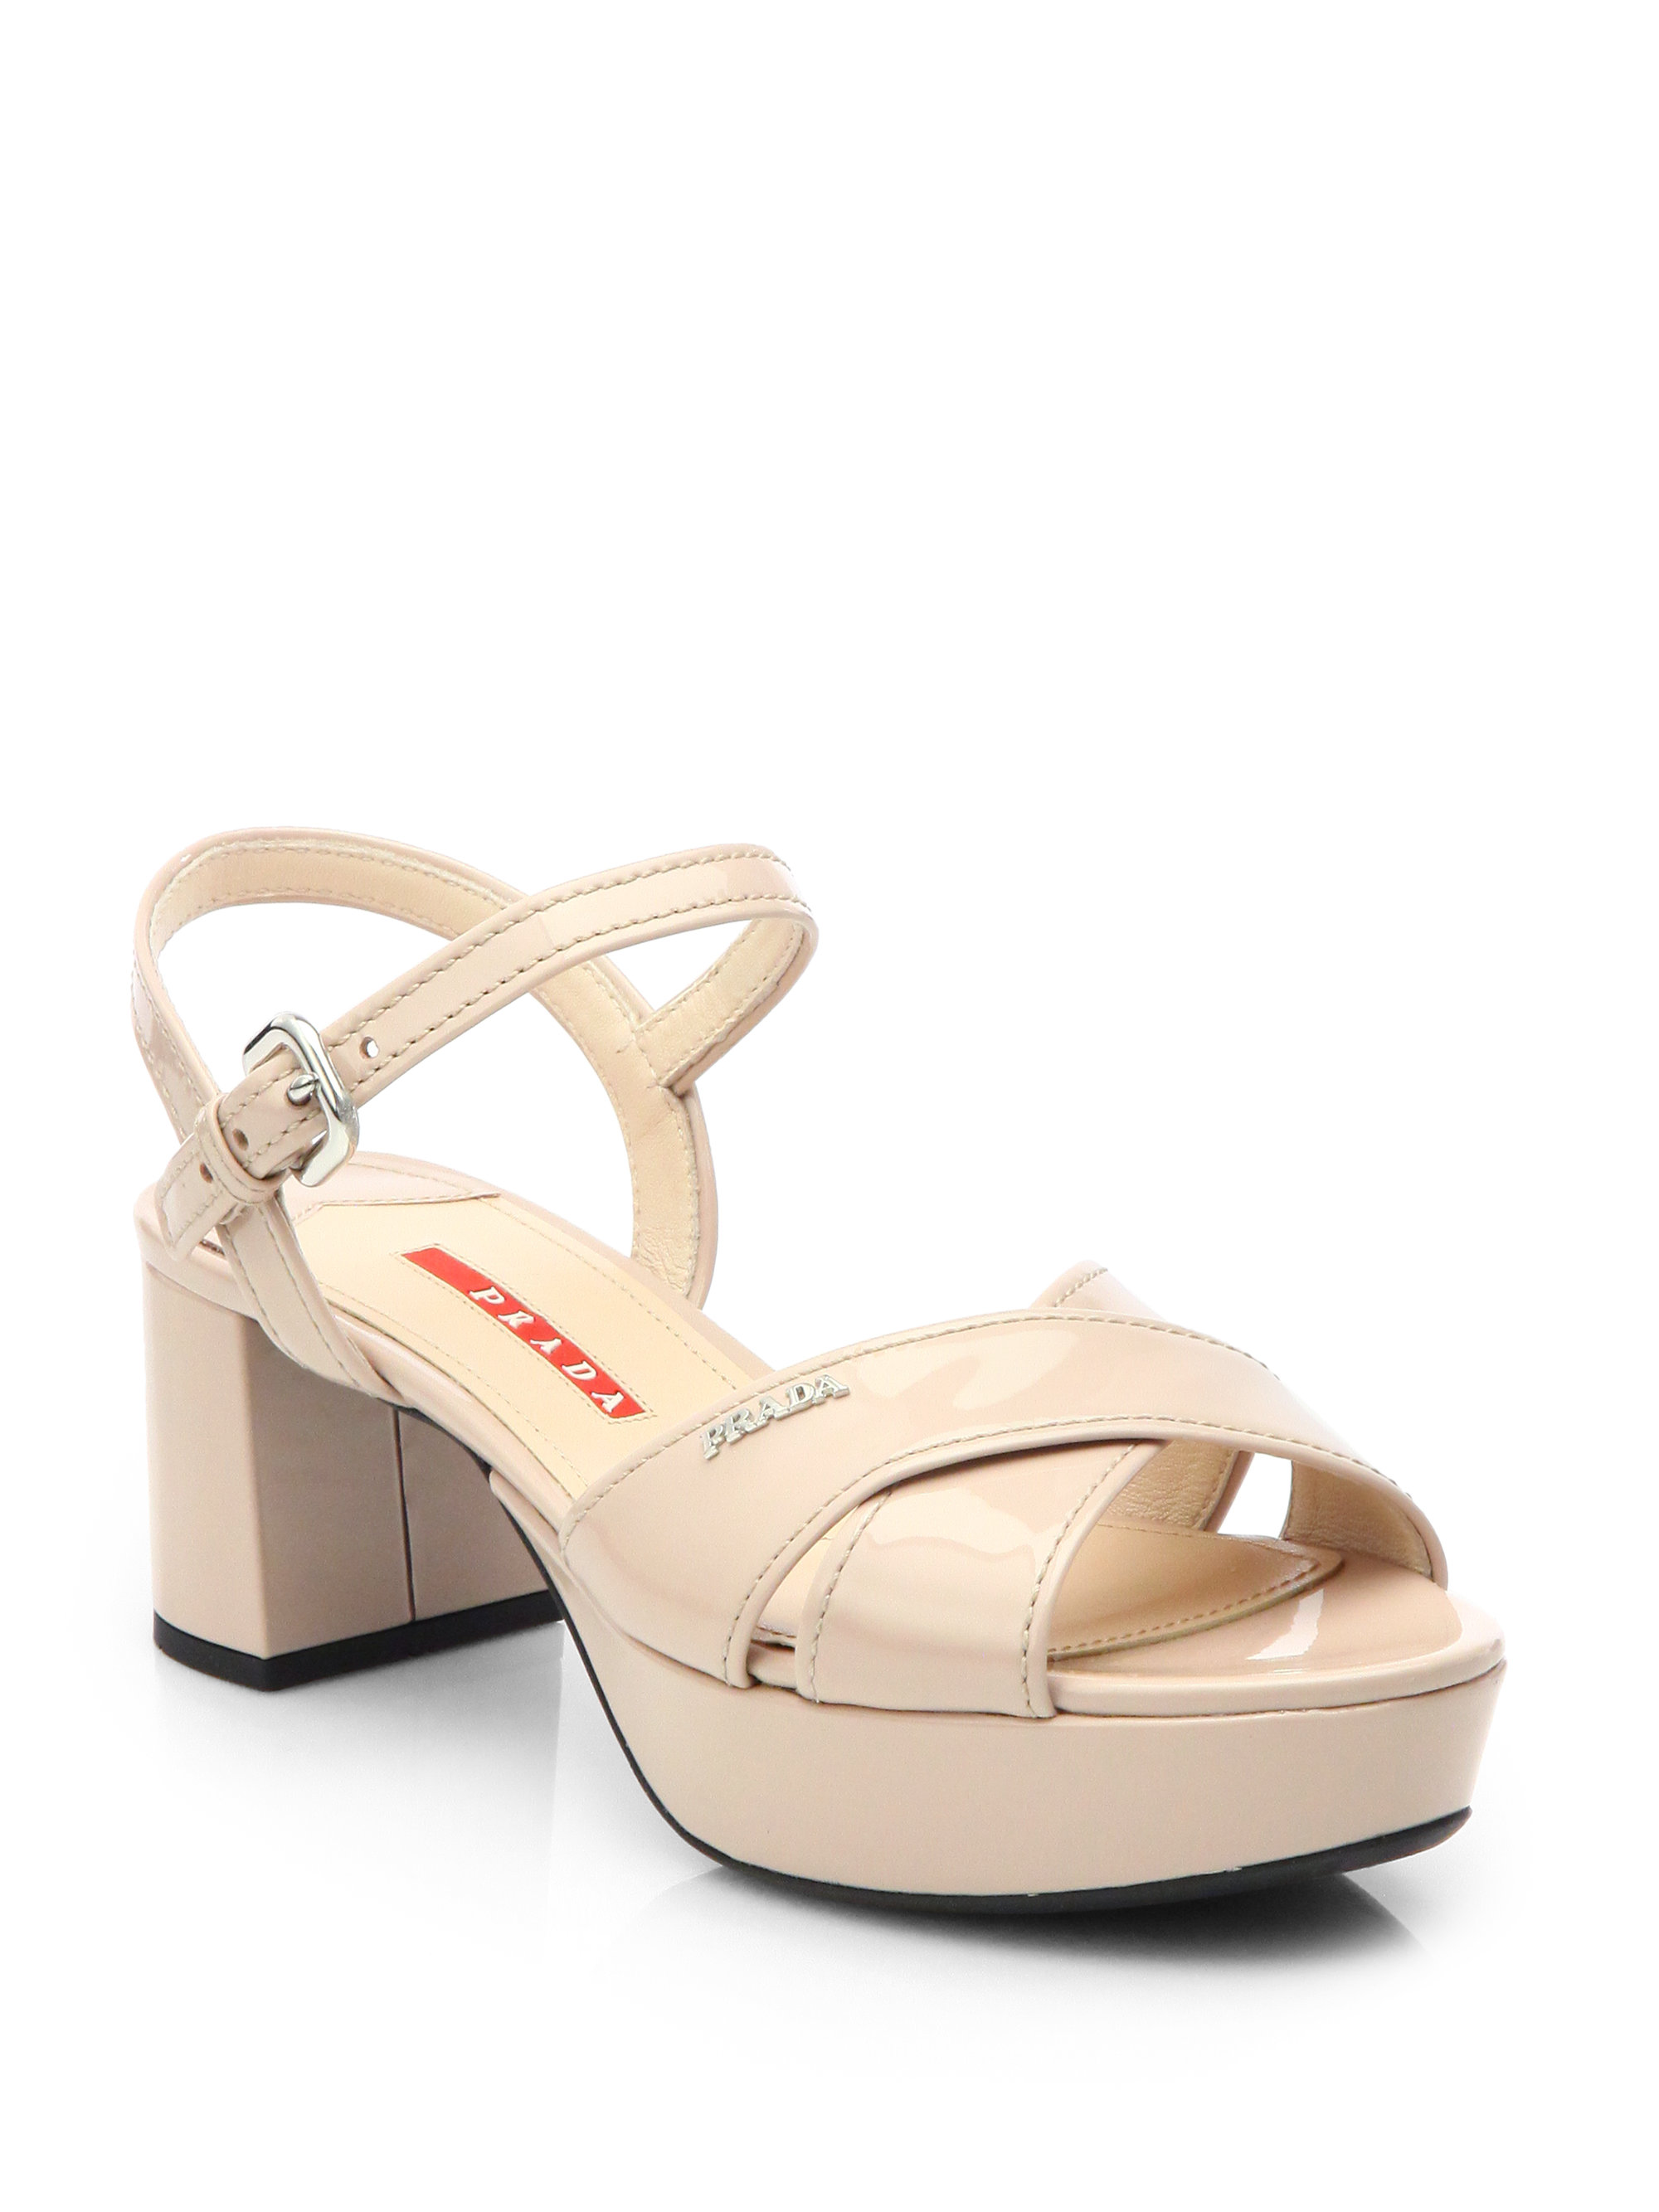 Lyst - Prada Patent Leather Crisscross Platform Sandals in Natural 2563a9ba8